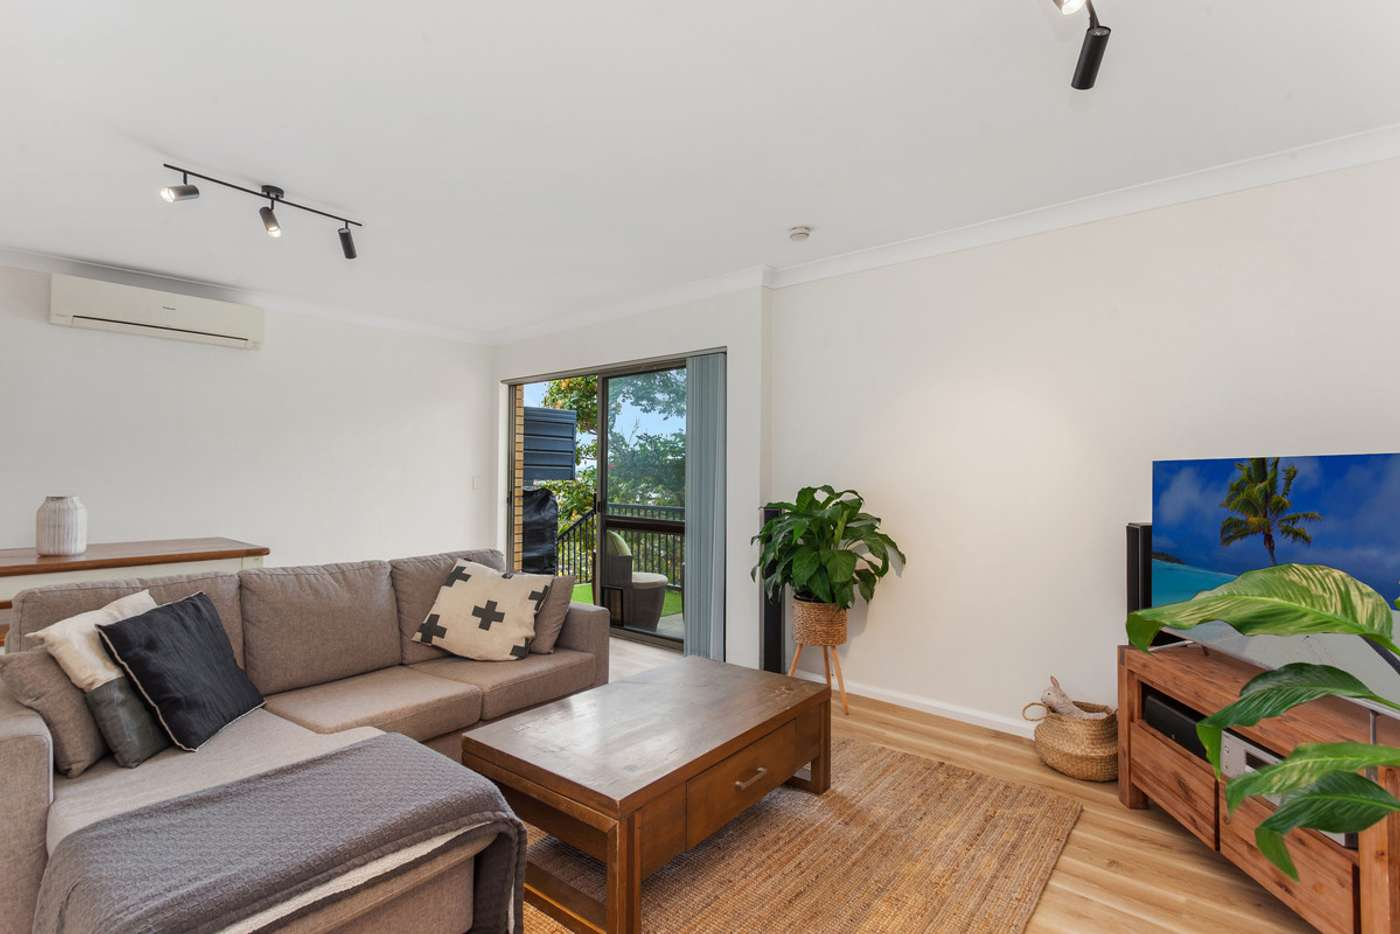 Main view of Homely unit listing, 5/141 George Street West, Burleigh Heads QLD 4220